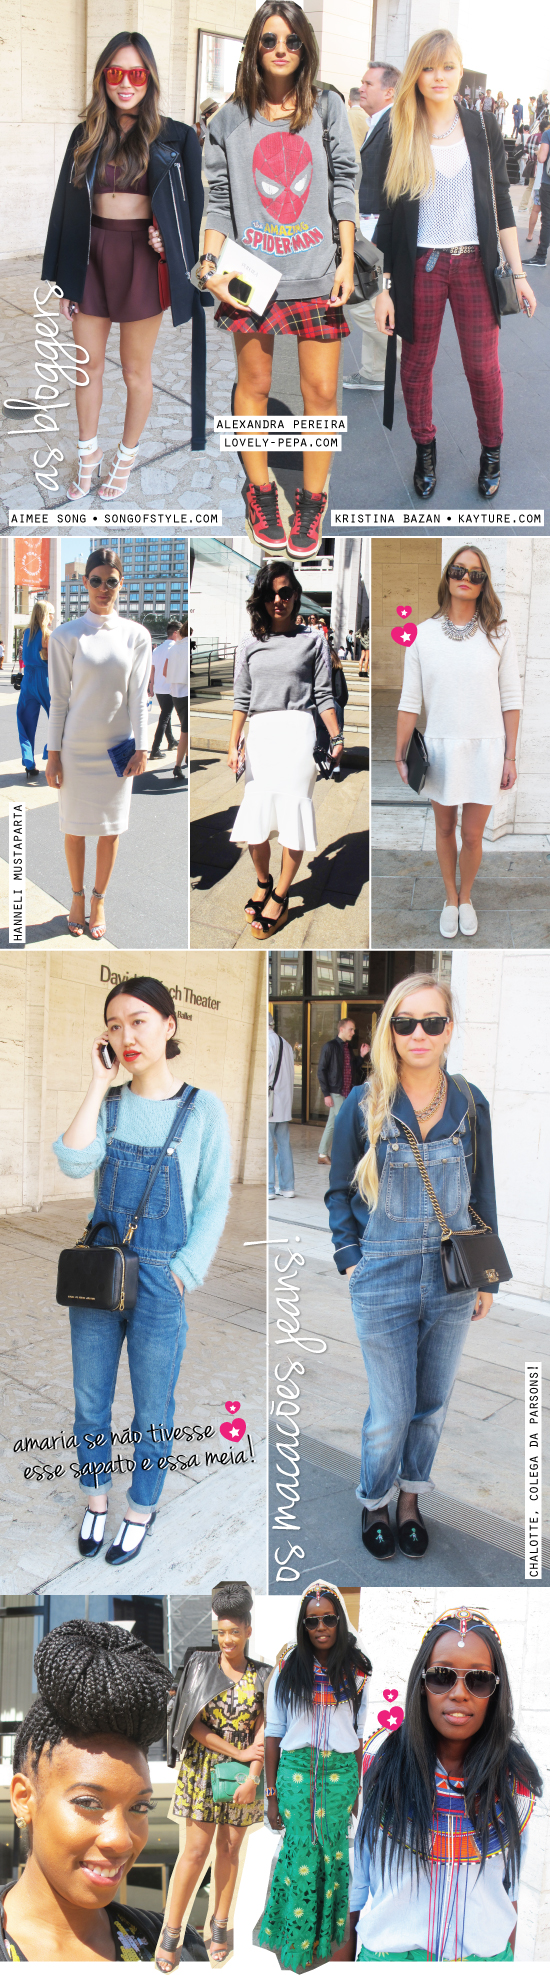 street-style-nyfw-lincoln-center-new-york-looks-outfit-moda-fashion-trends-trend-tendencia-spring-14-blog-bloggers